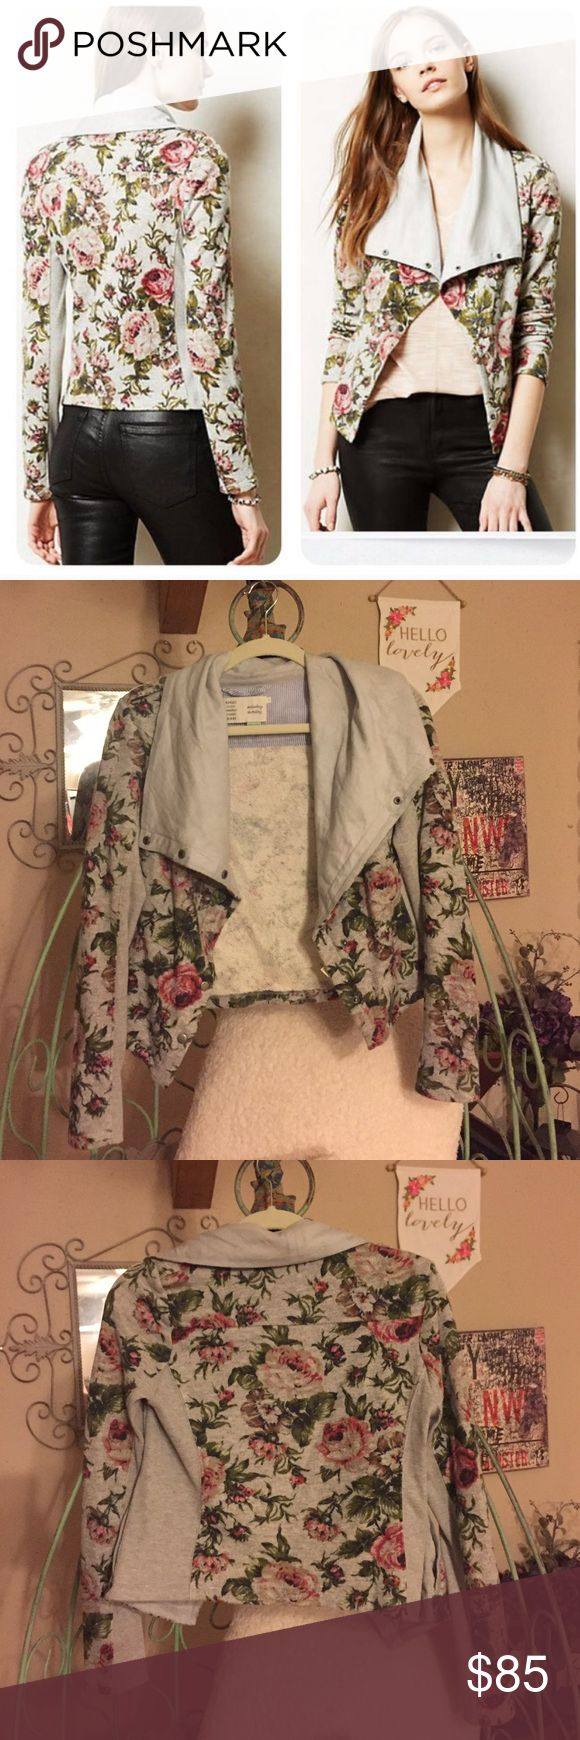 Anthropologie Floral Moto-Jacket Anthropologie Floral Moto-Jacket, size XS petite. This jacket is new without tags, never worn. Beautiful grey & floral! Perfect transition piece from Winter to Spring! 🌸🌹🌷 Comes from a smoke free home. Anthropologie Jackets & Coats